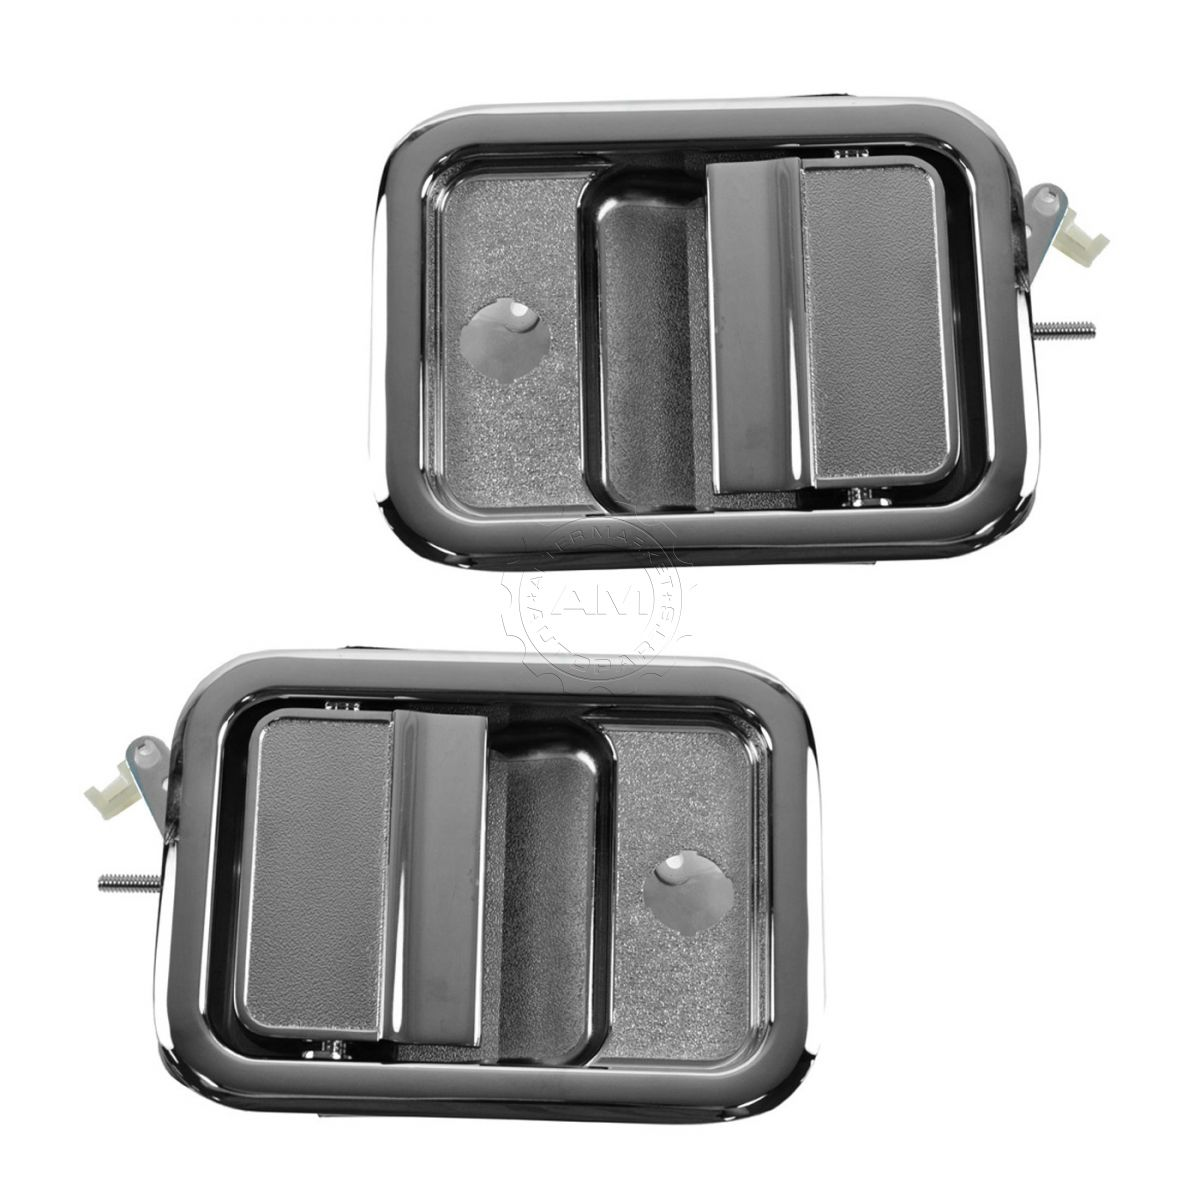 Dorman Front Window Track Guide Plate LH Left or RH Right for Chevy Cadillac GMC